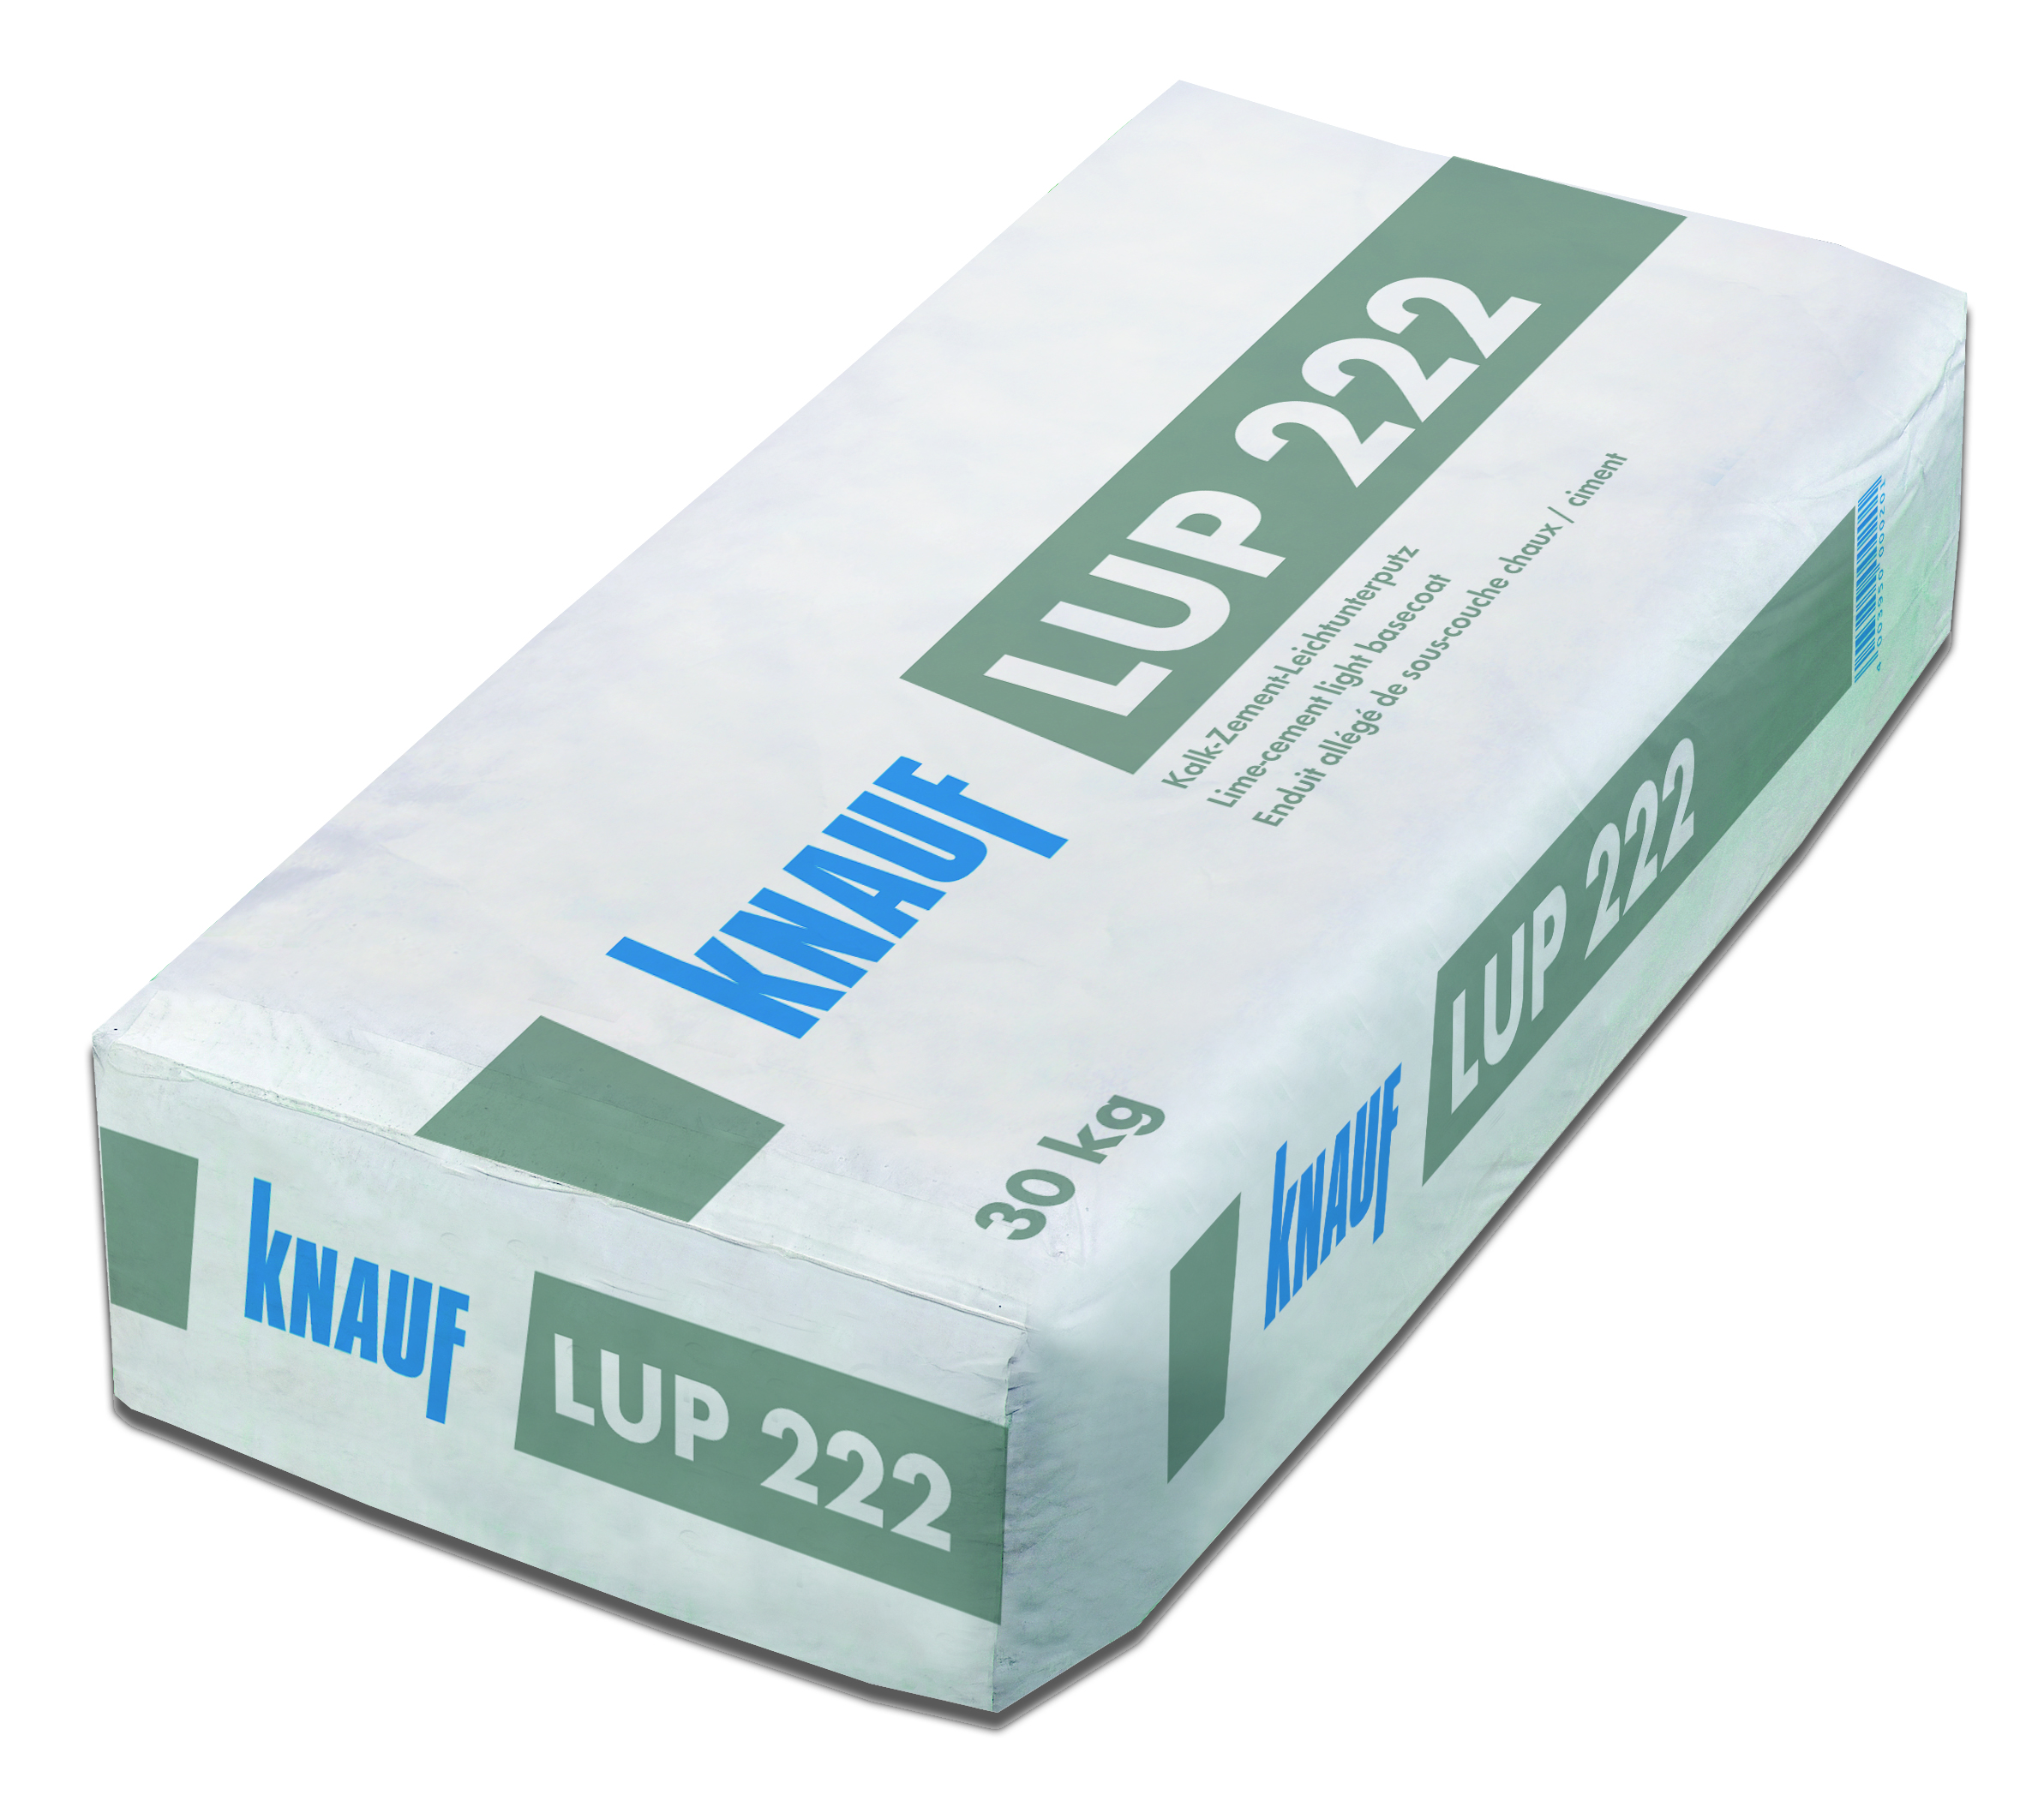 LUP 222